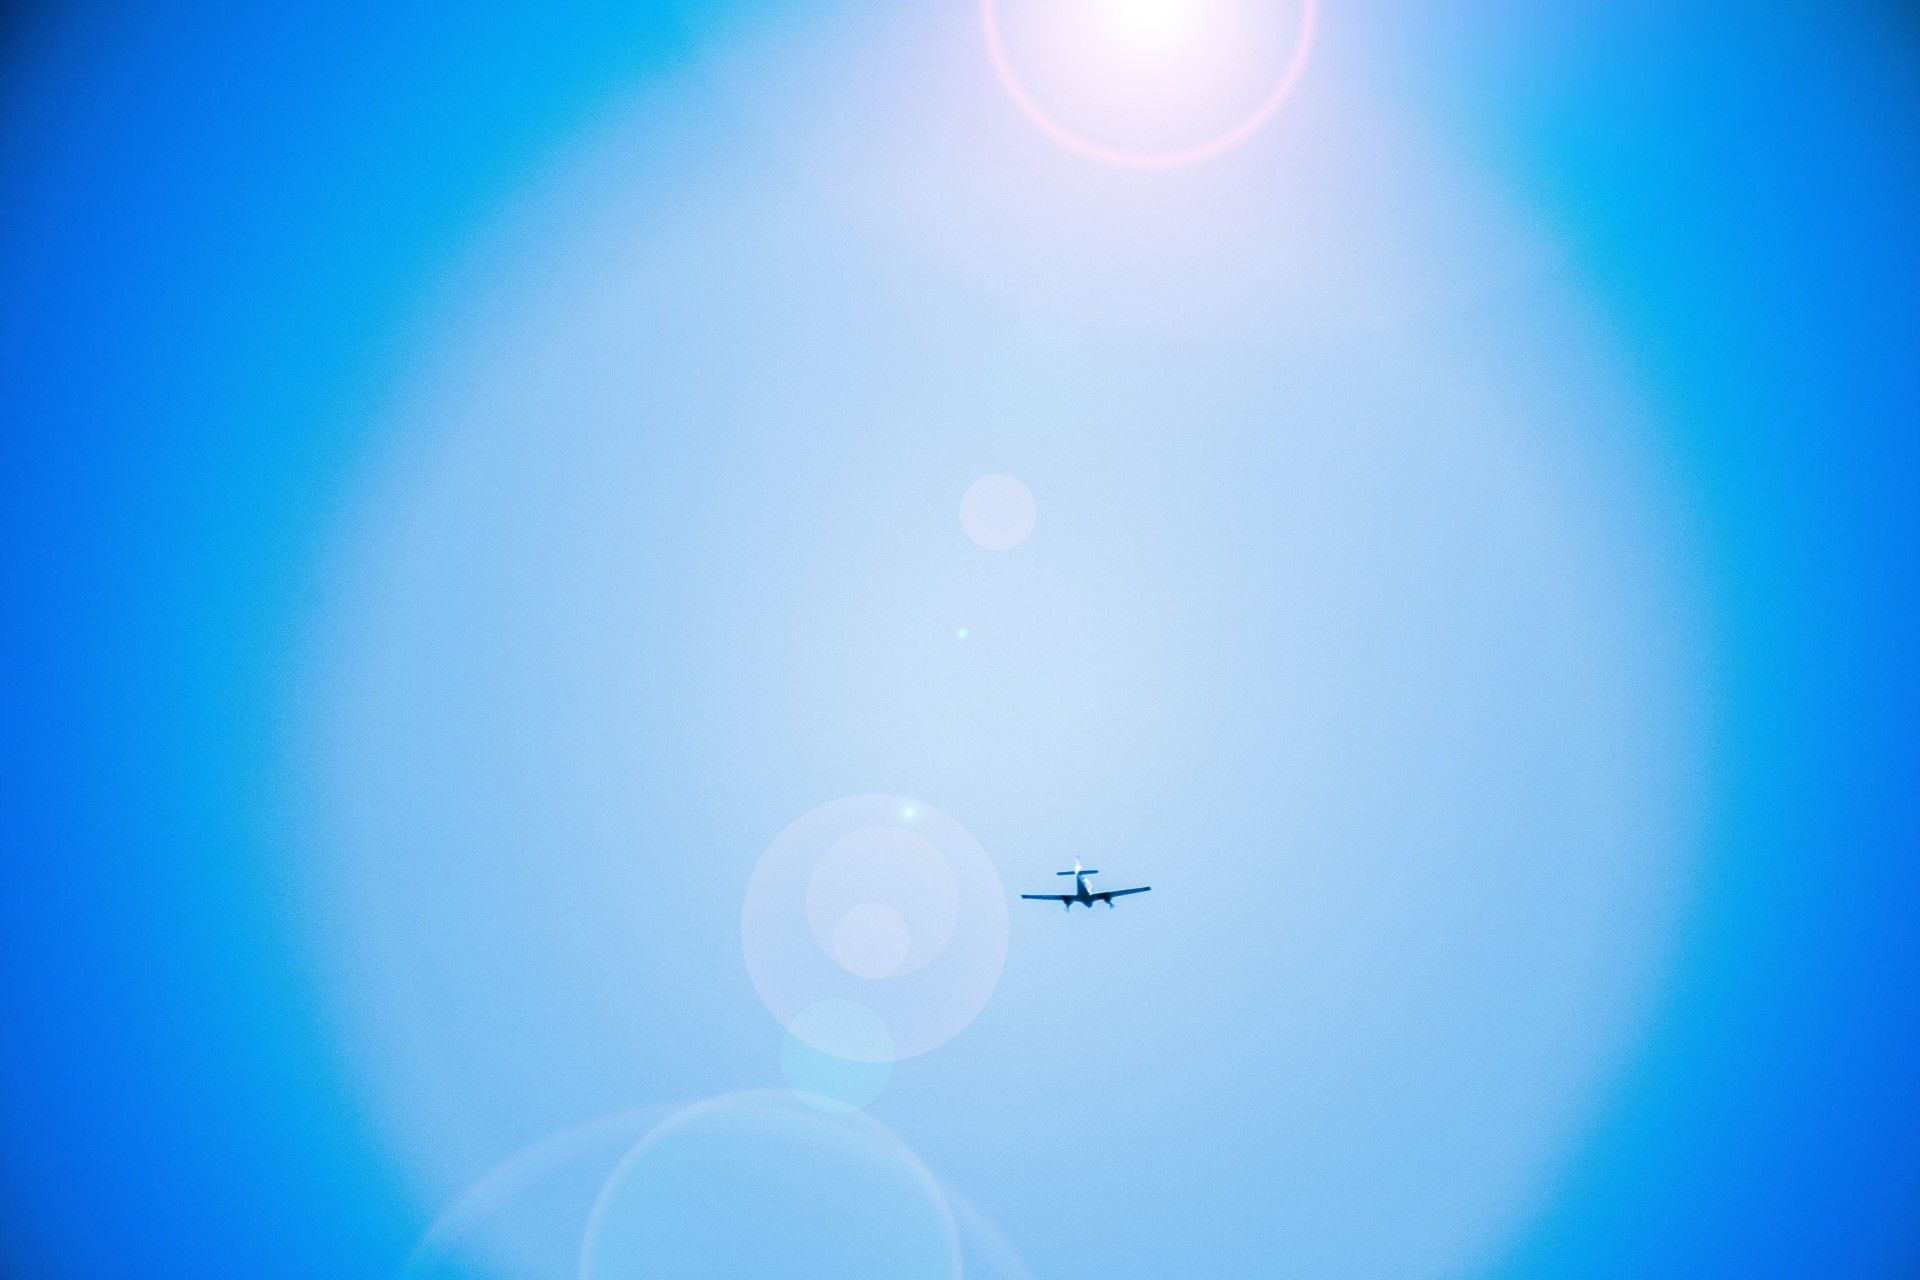 Picture of a plane in the air